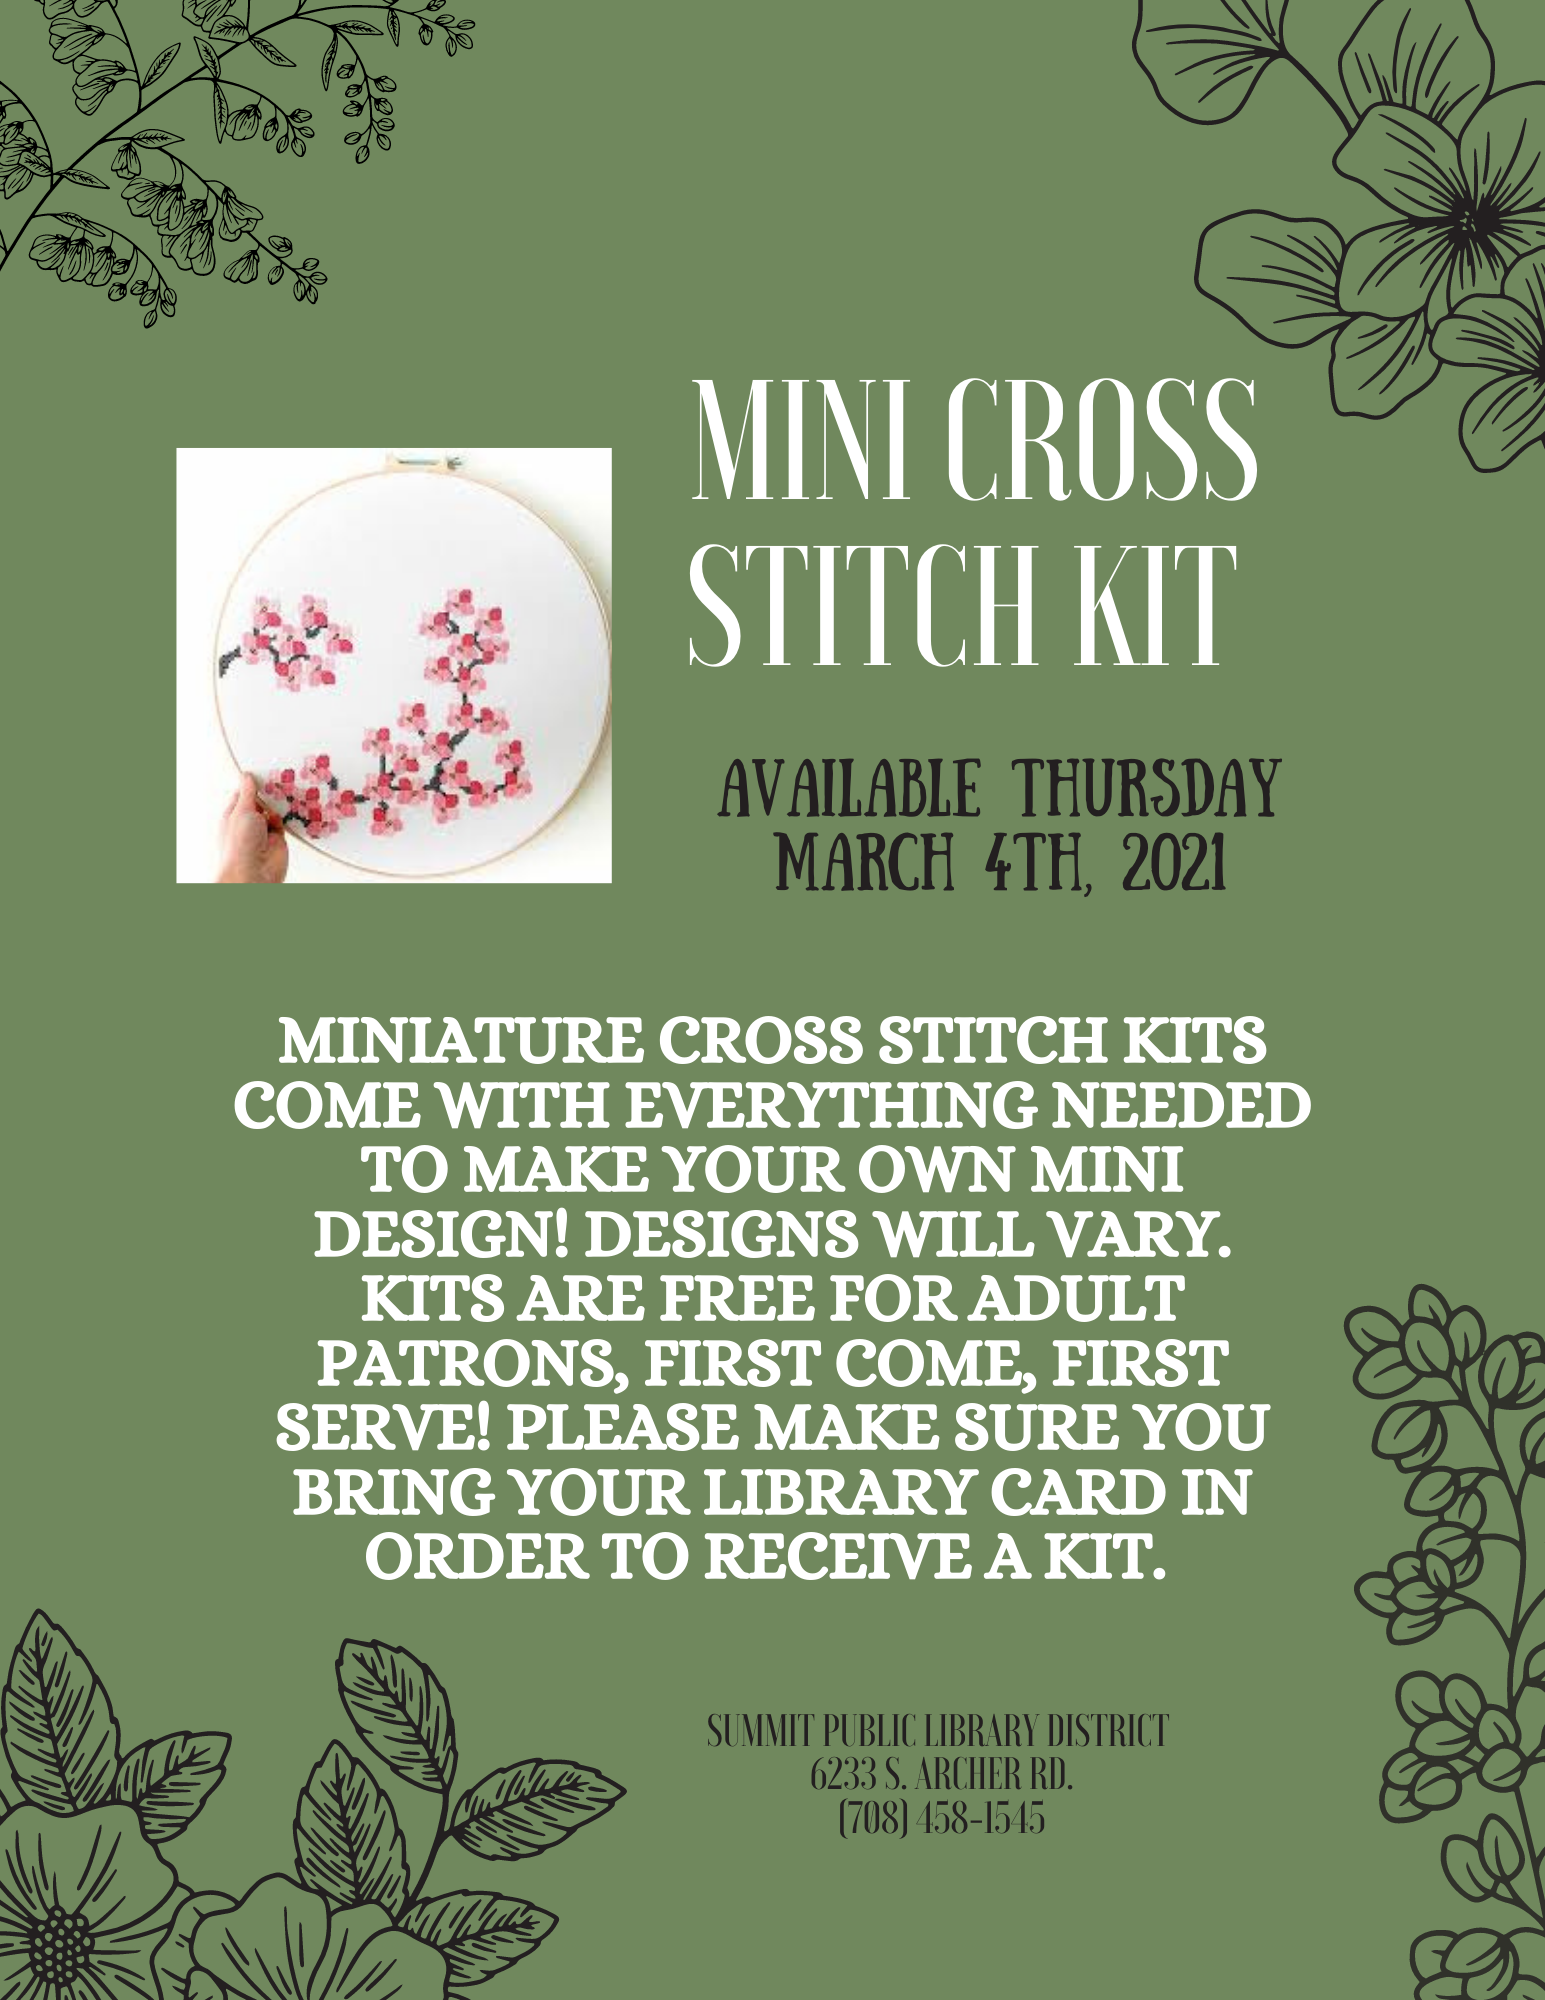 Mini Cross Stitch Kit